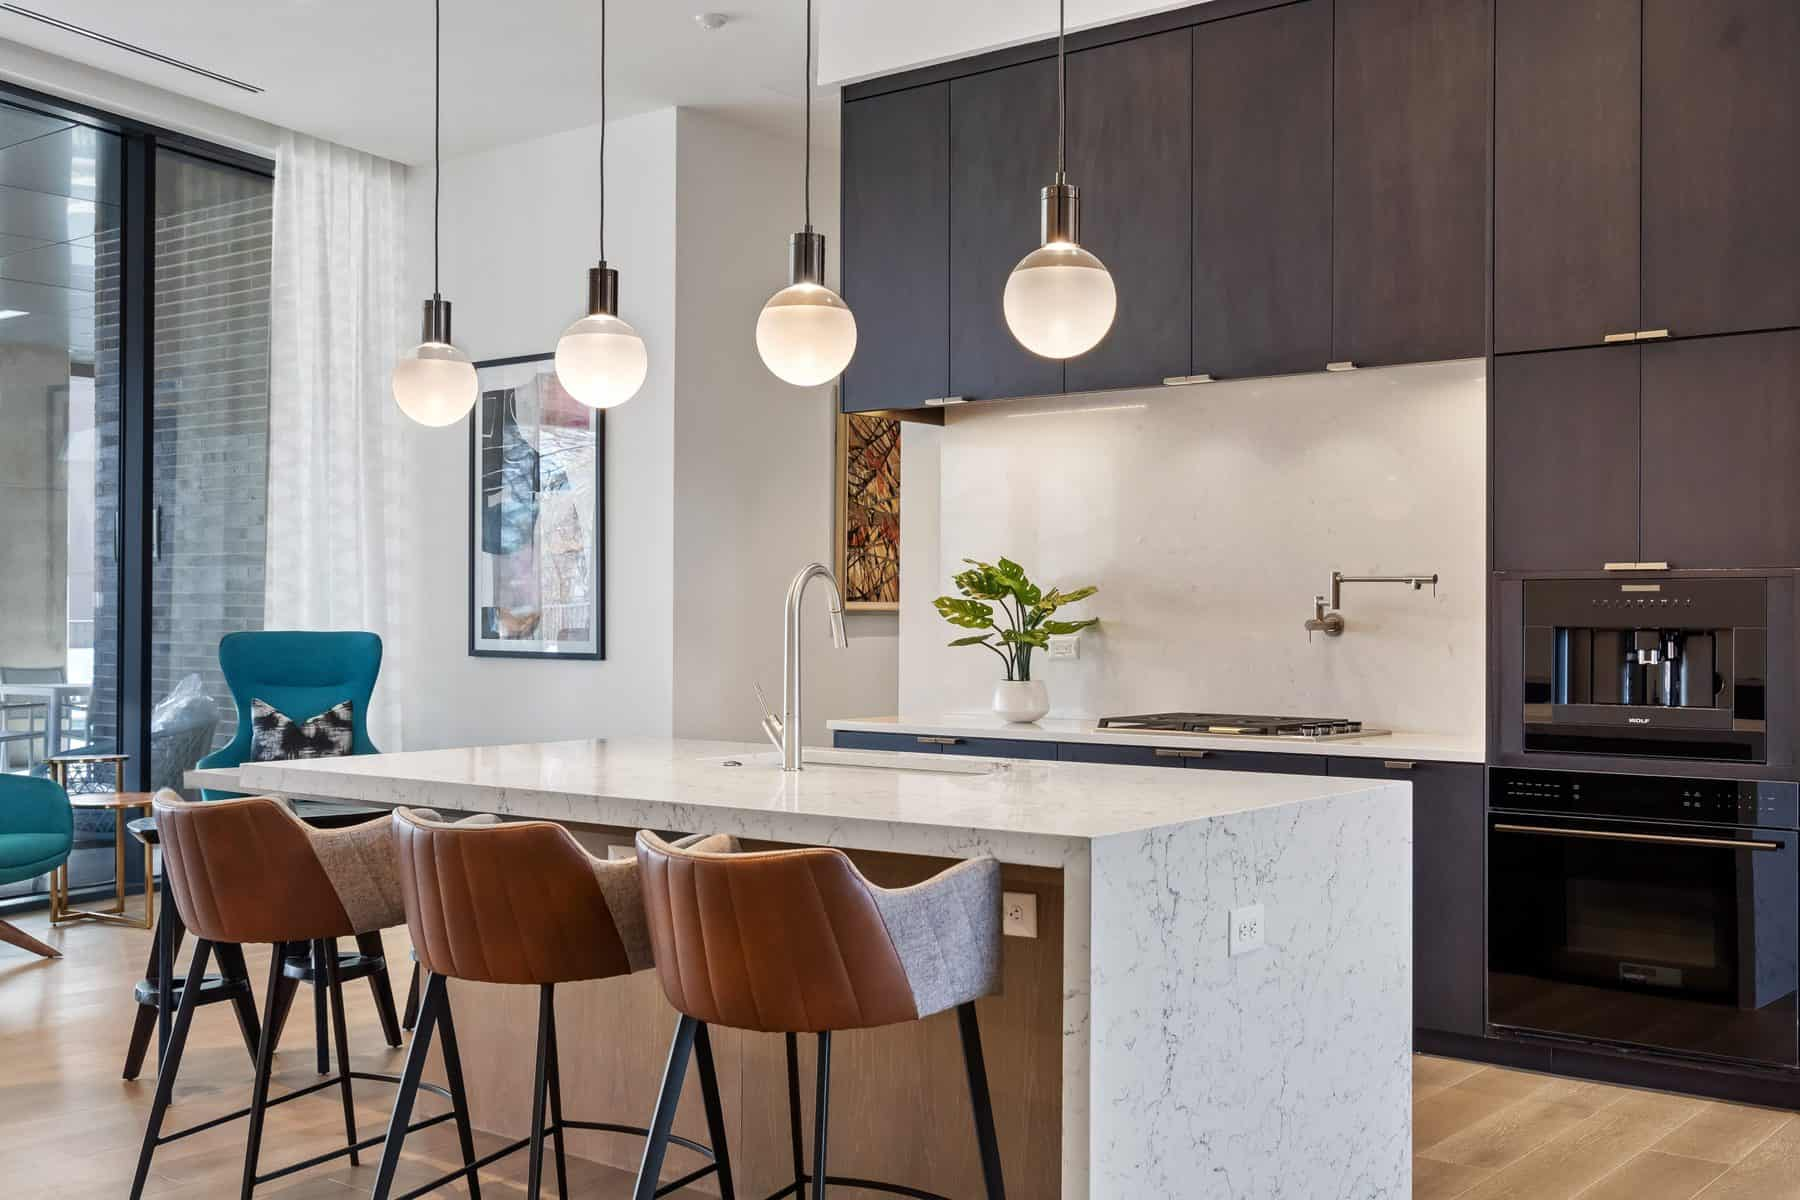 Seven88 West Midtown Demonstration Kitchen with pendant lighting, waterfall island with seating